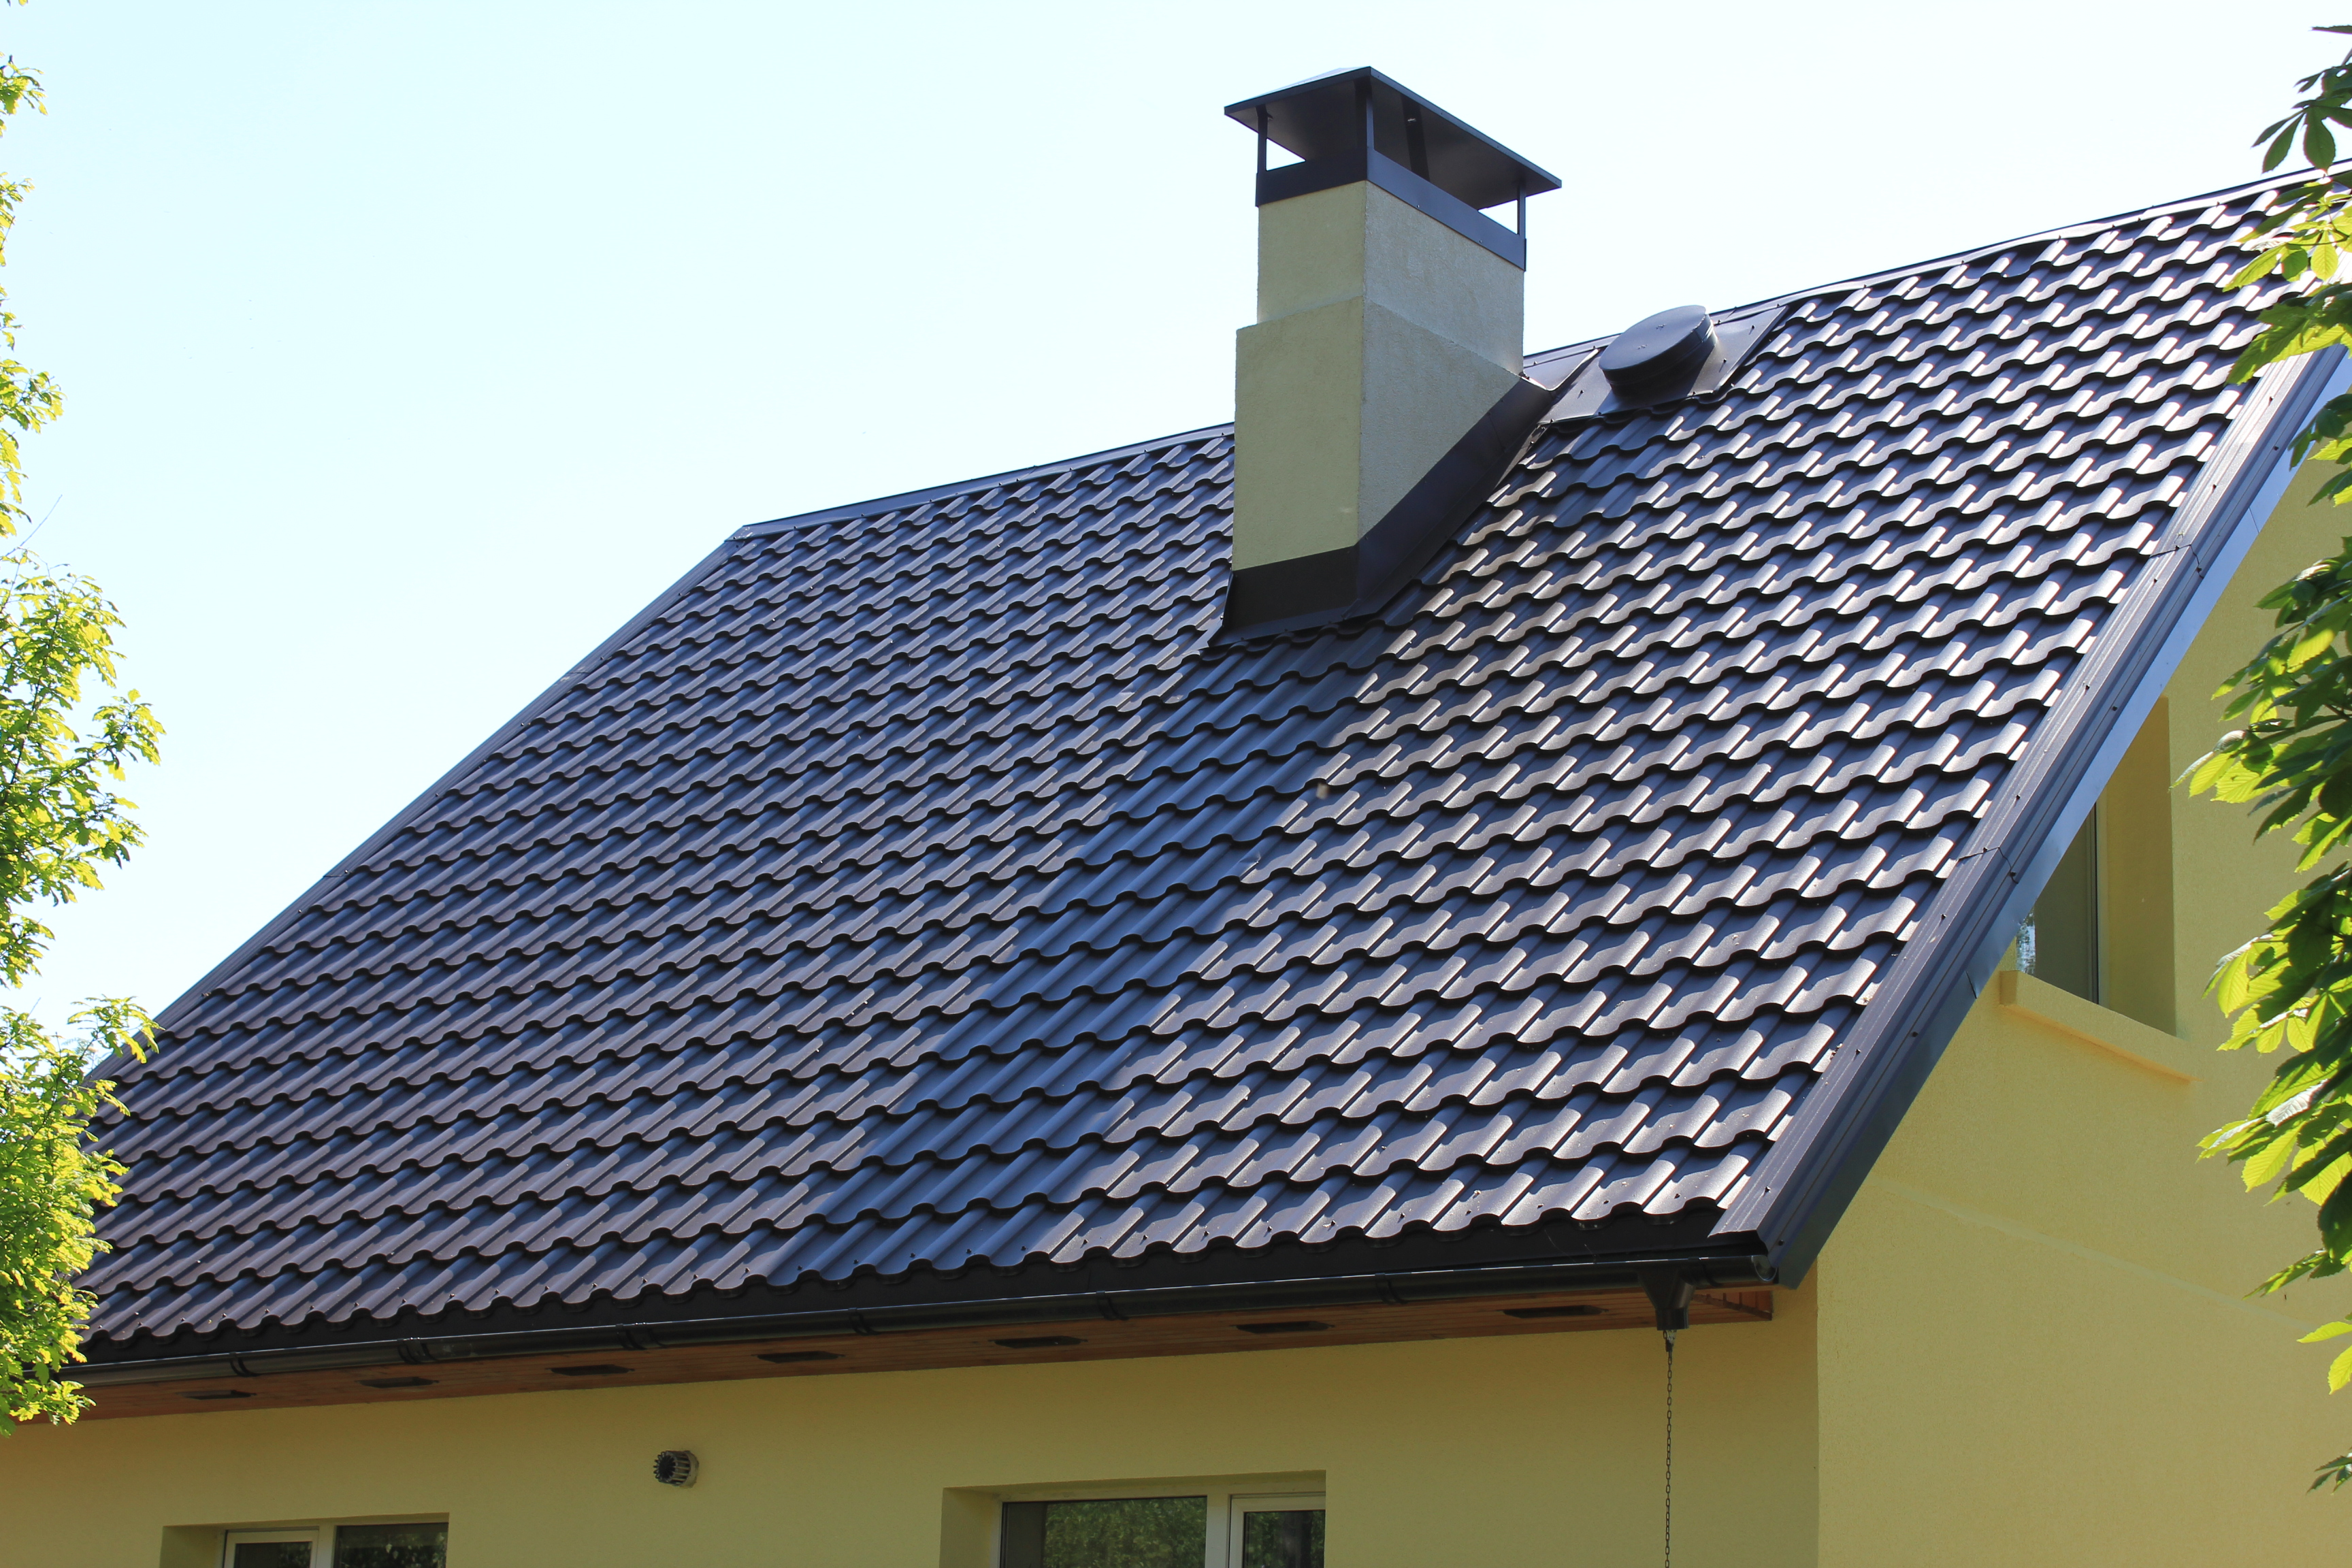 Steel roofing experts